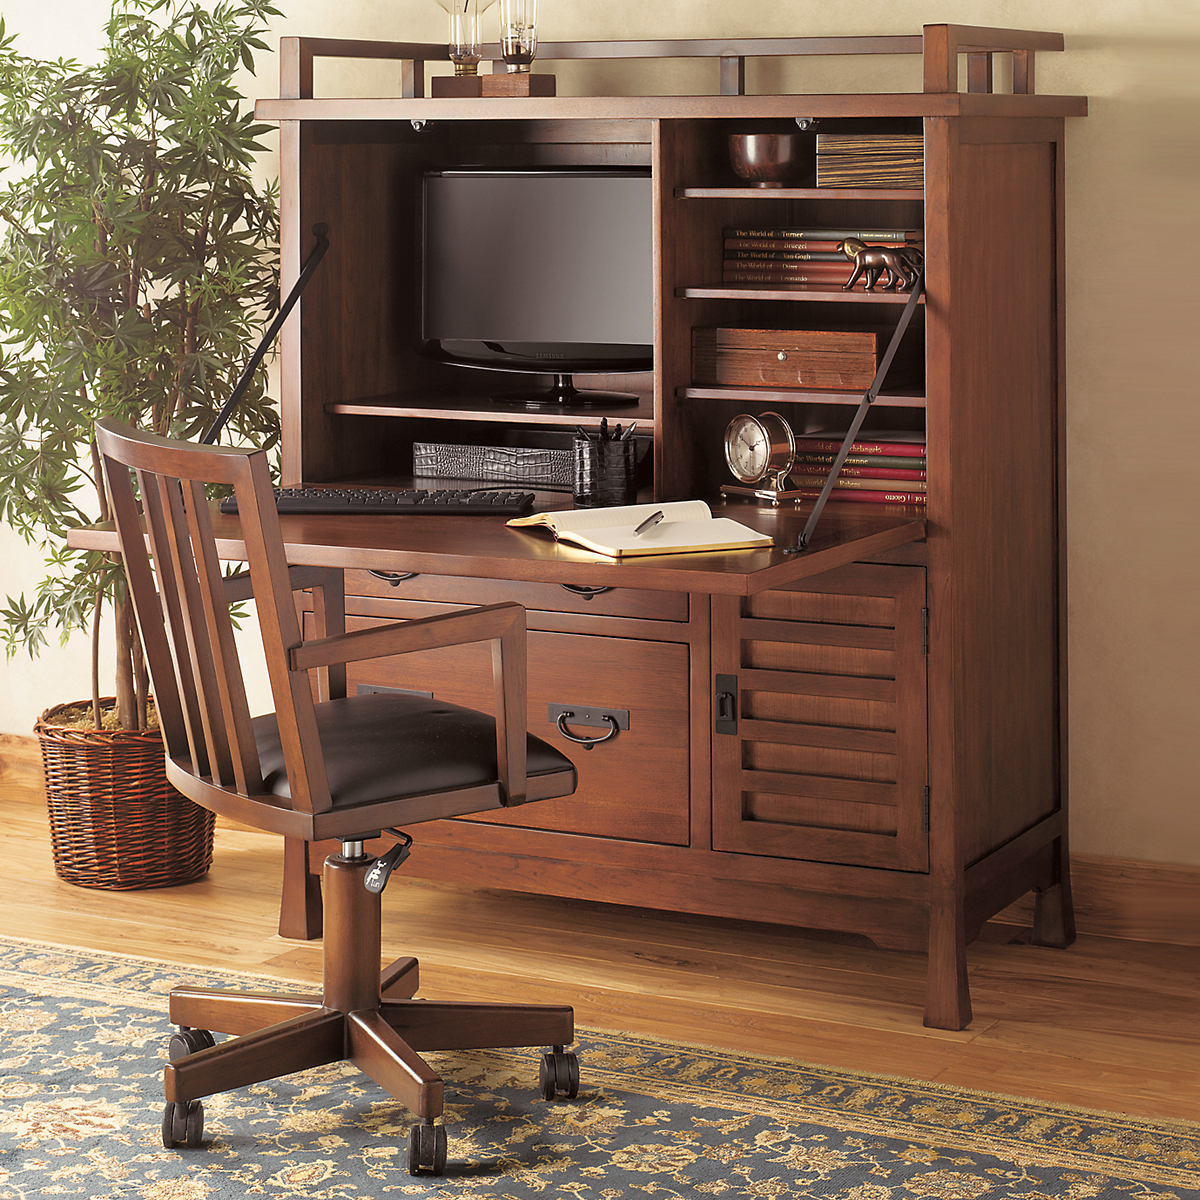 Maria Yee Shinto Office Armoire, Compact